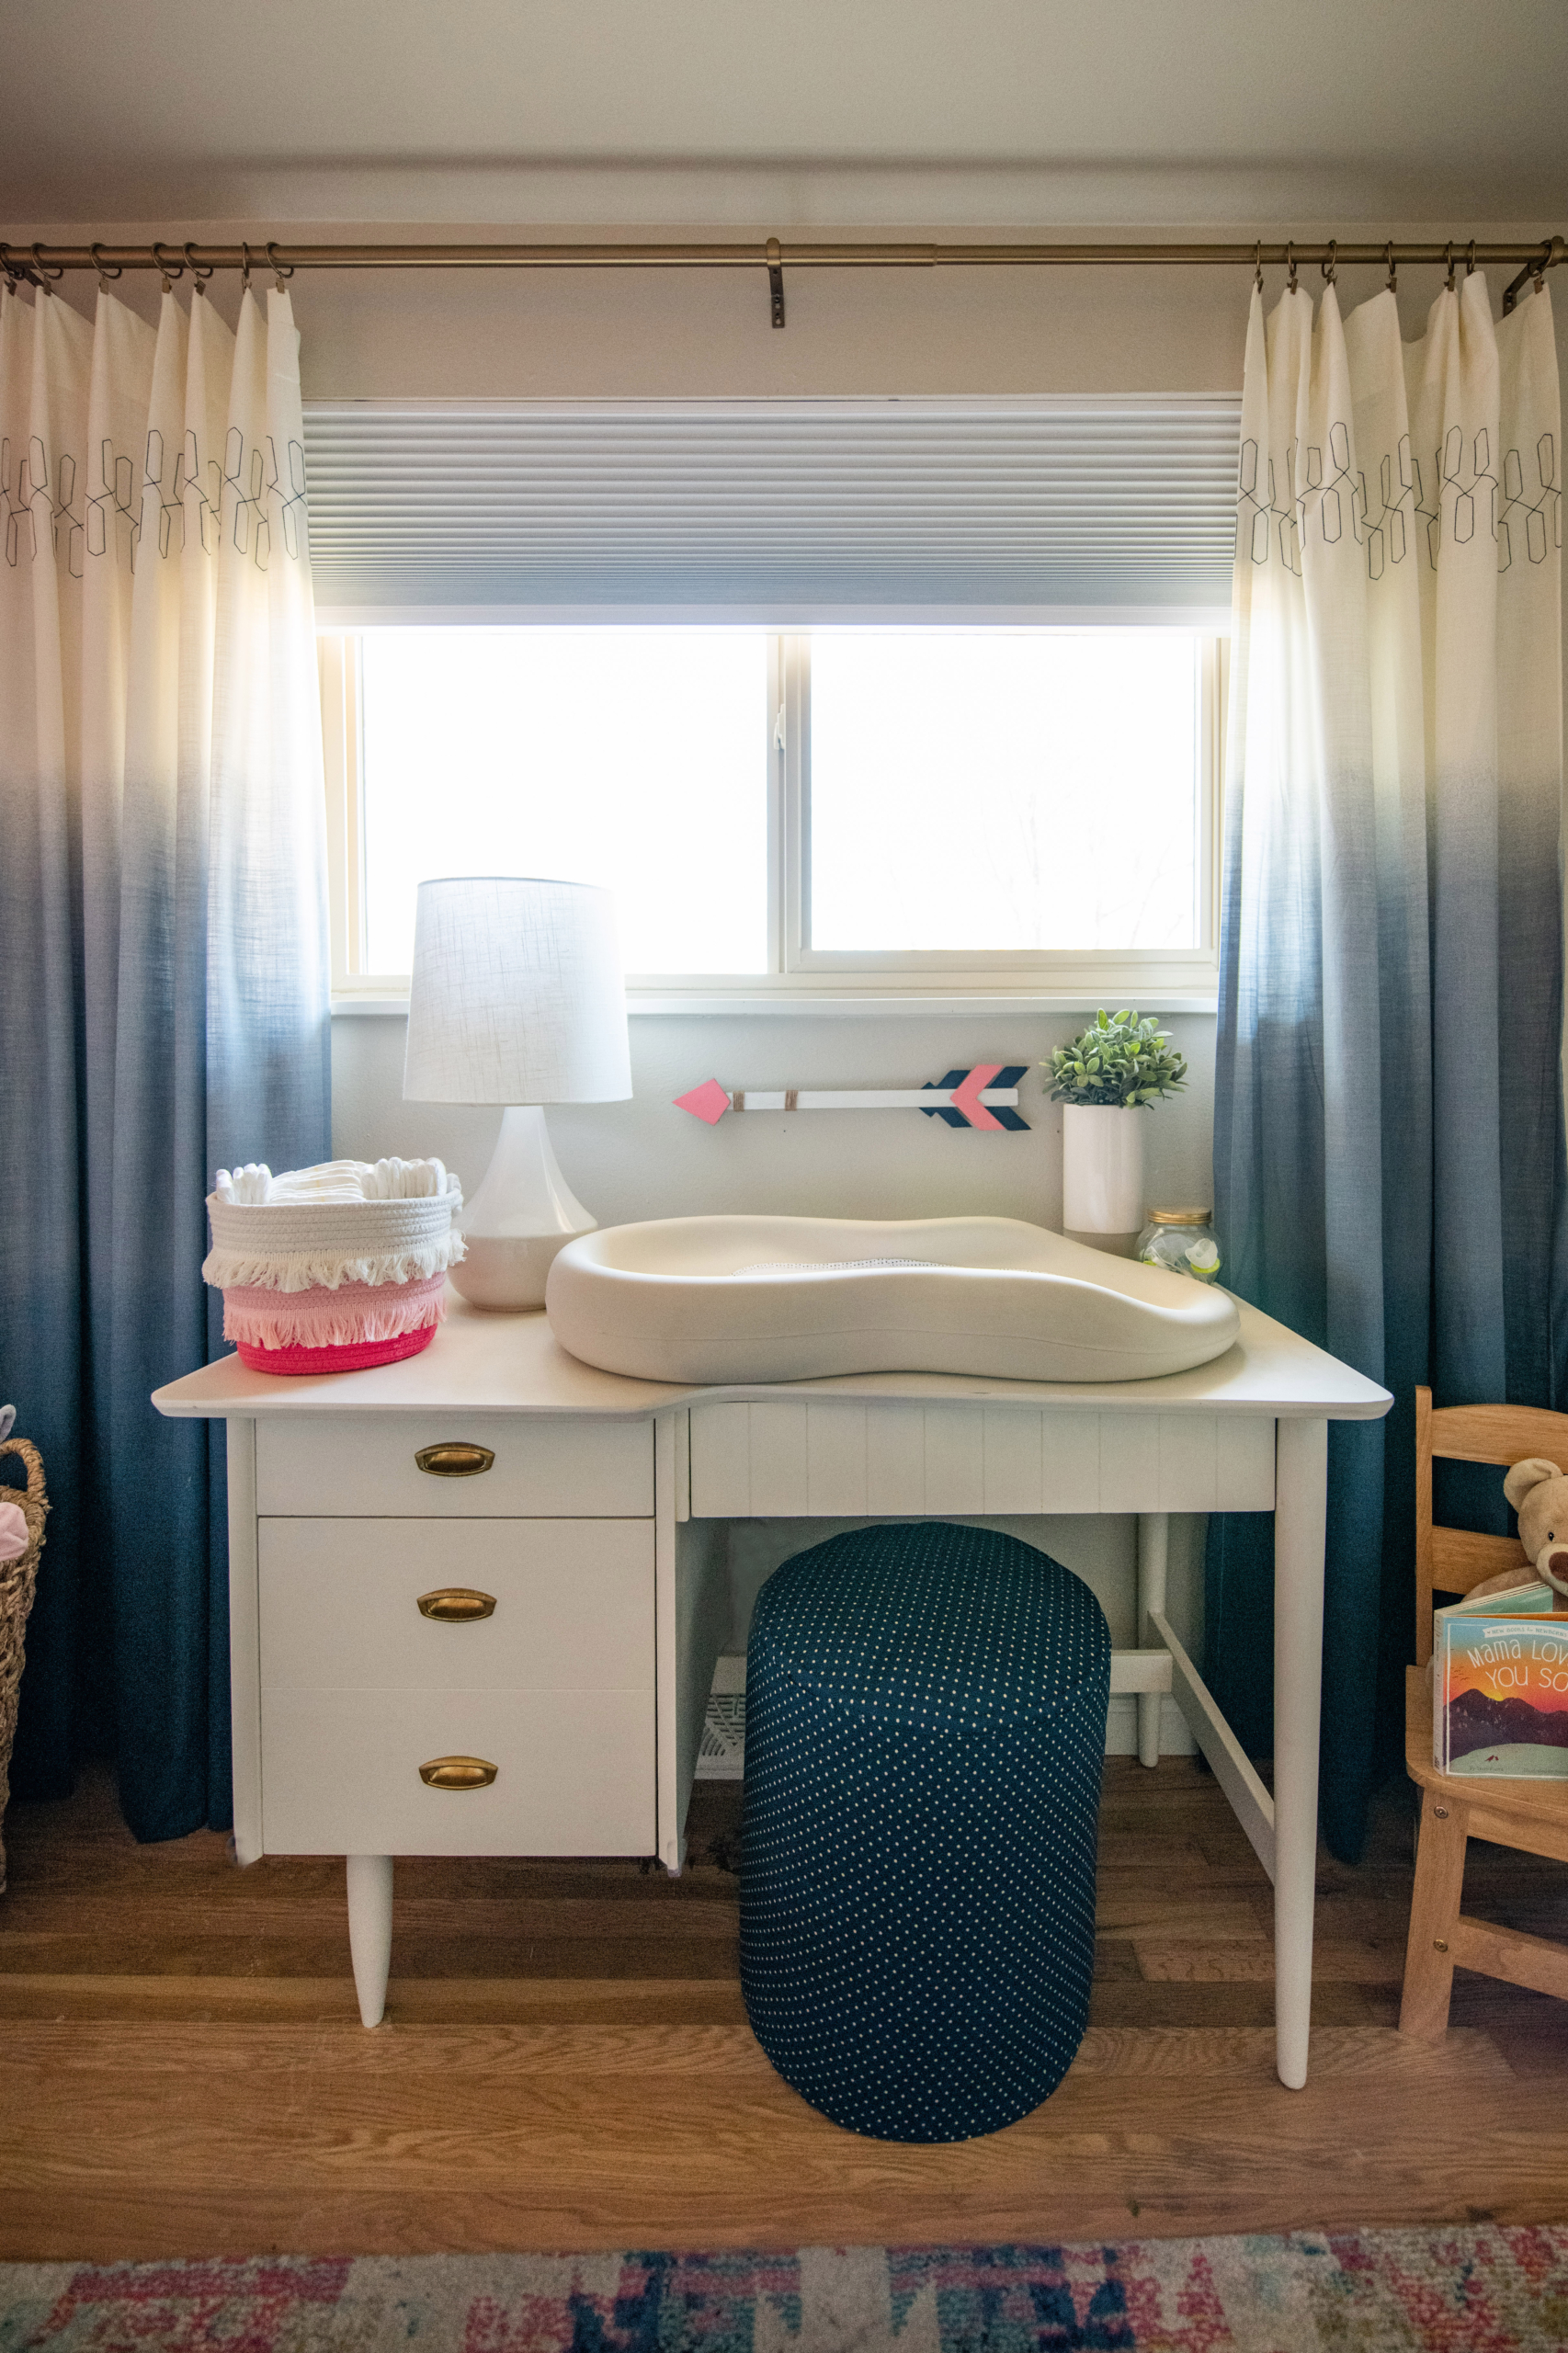 Wolf Nursery changing table with blue curtains and ottoman